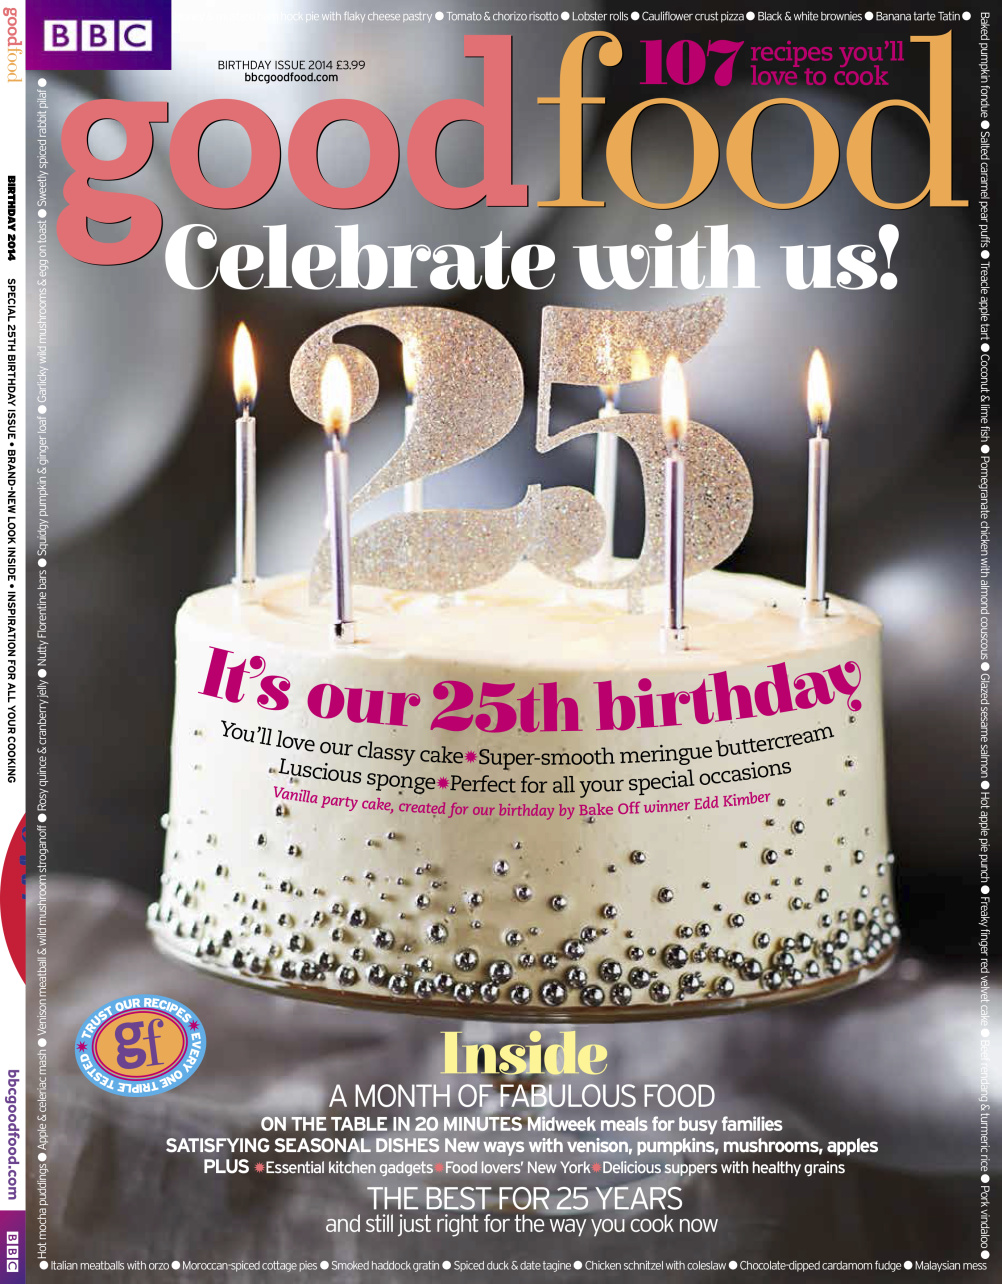 BBC Good Food 25th birthday magazine cover